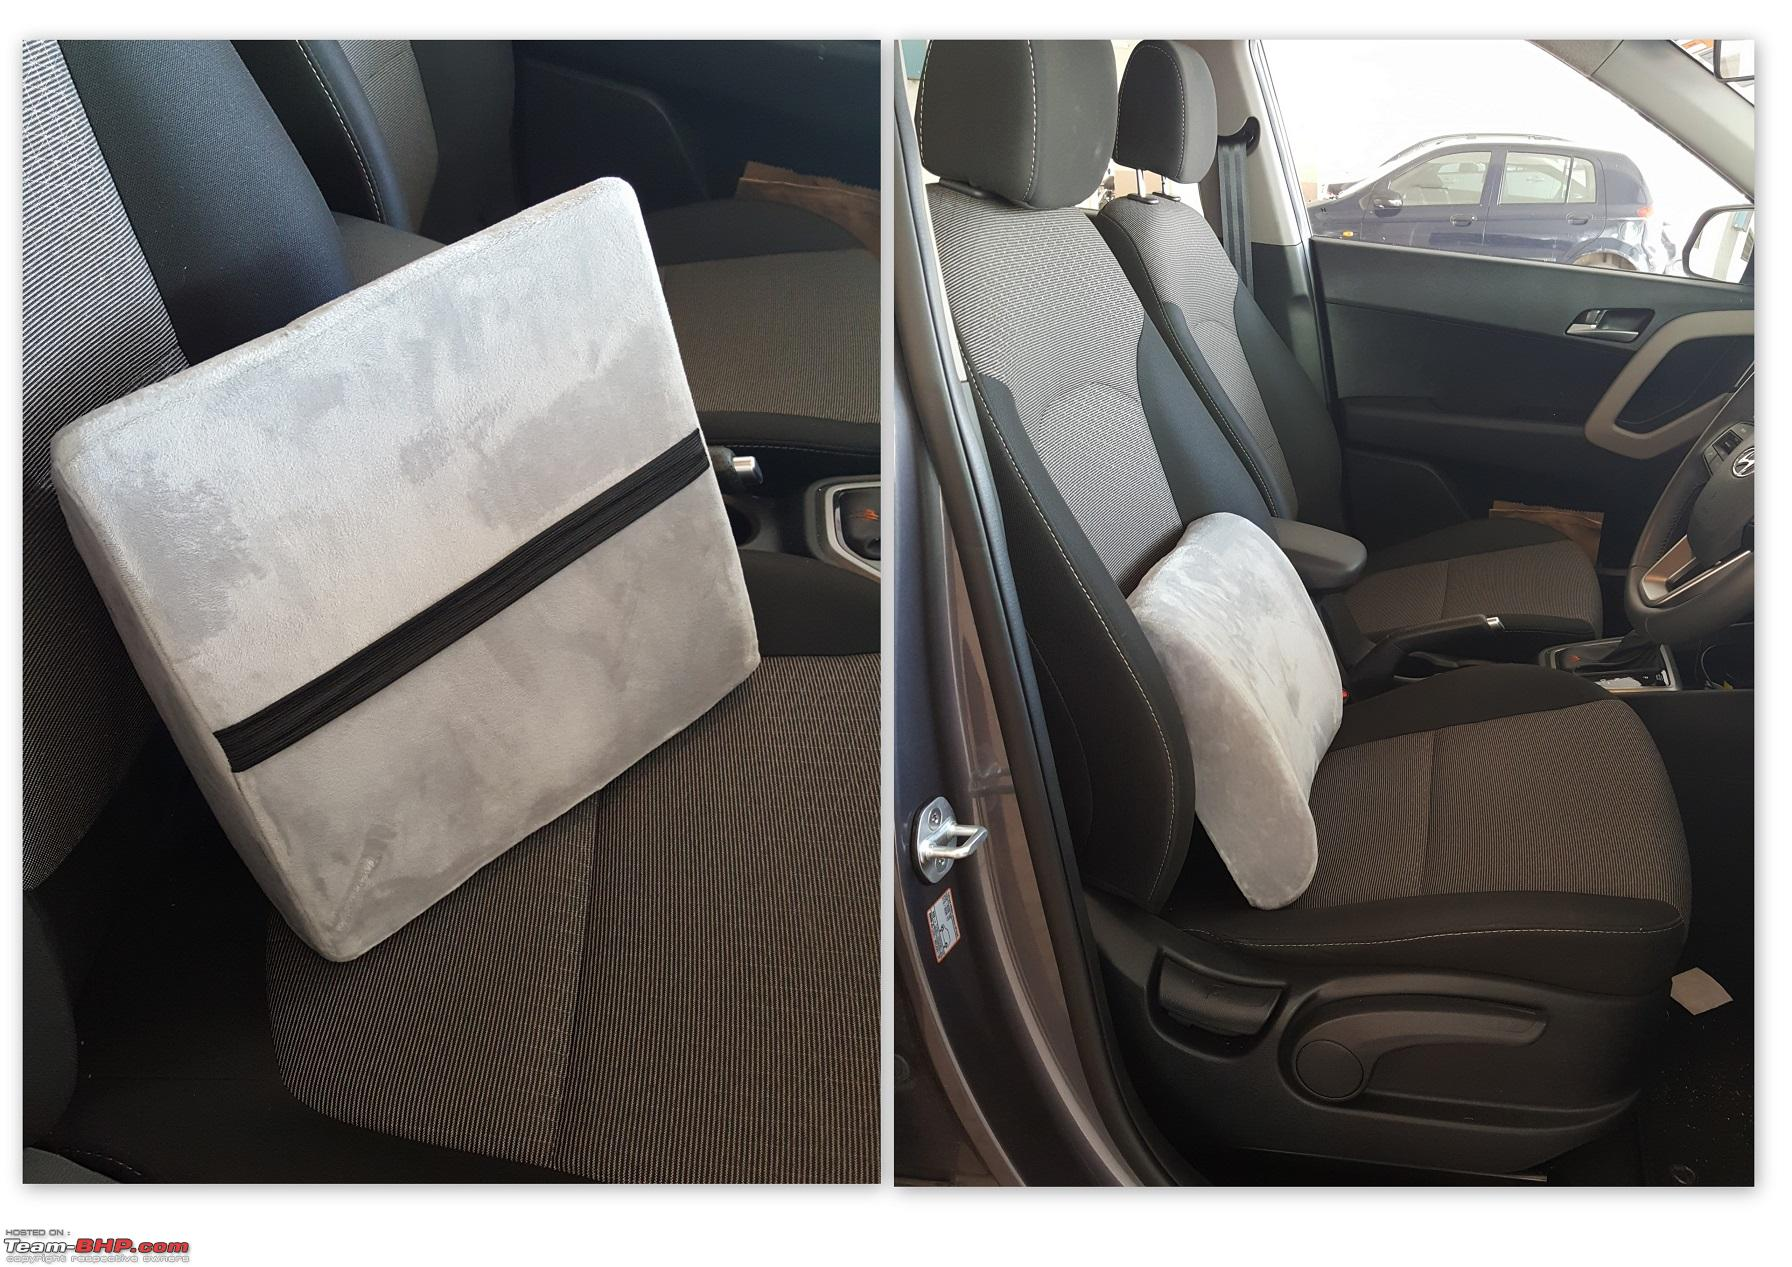 Lumbar Support Accessory For Car Seats Any Recommendation Teambhp1